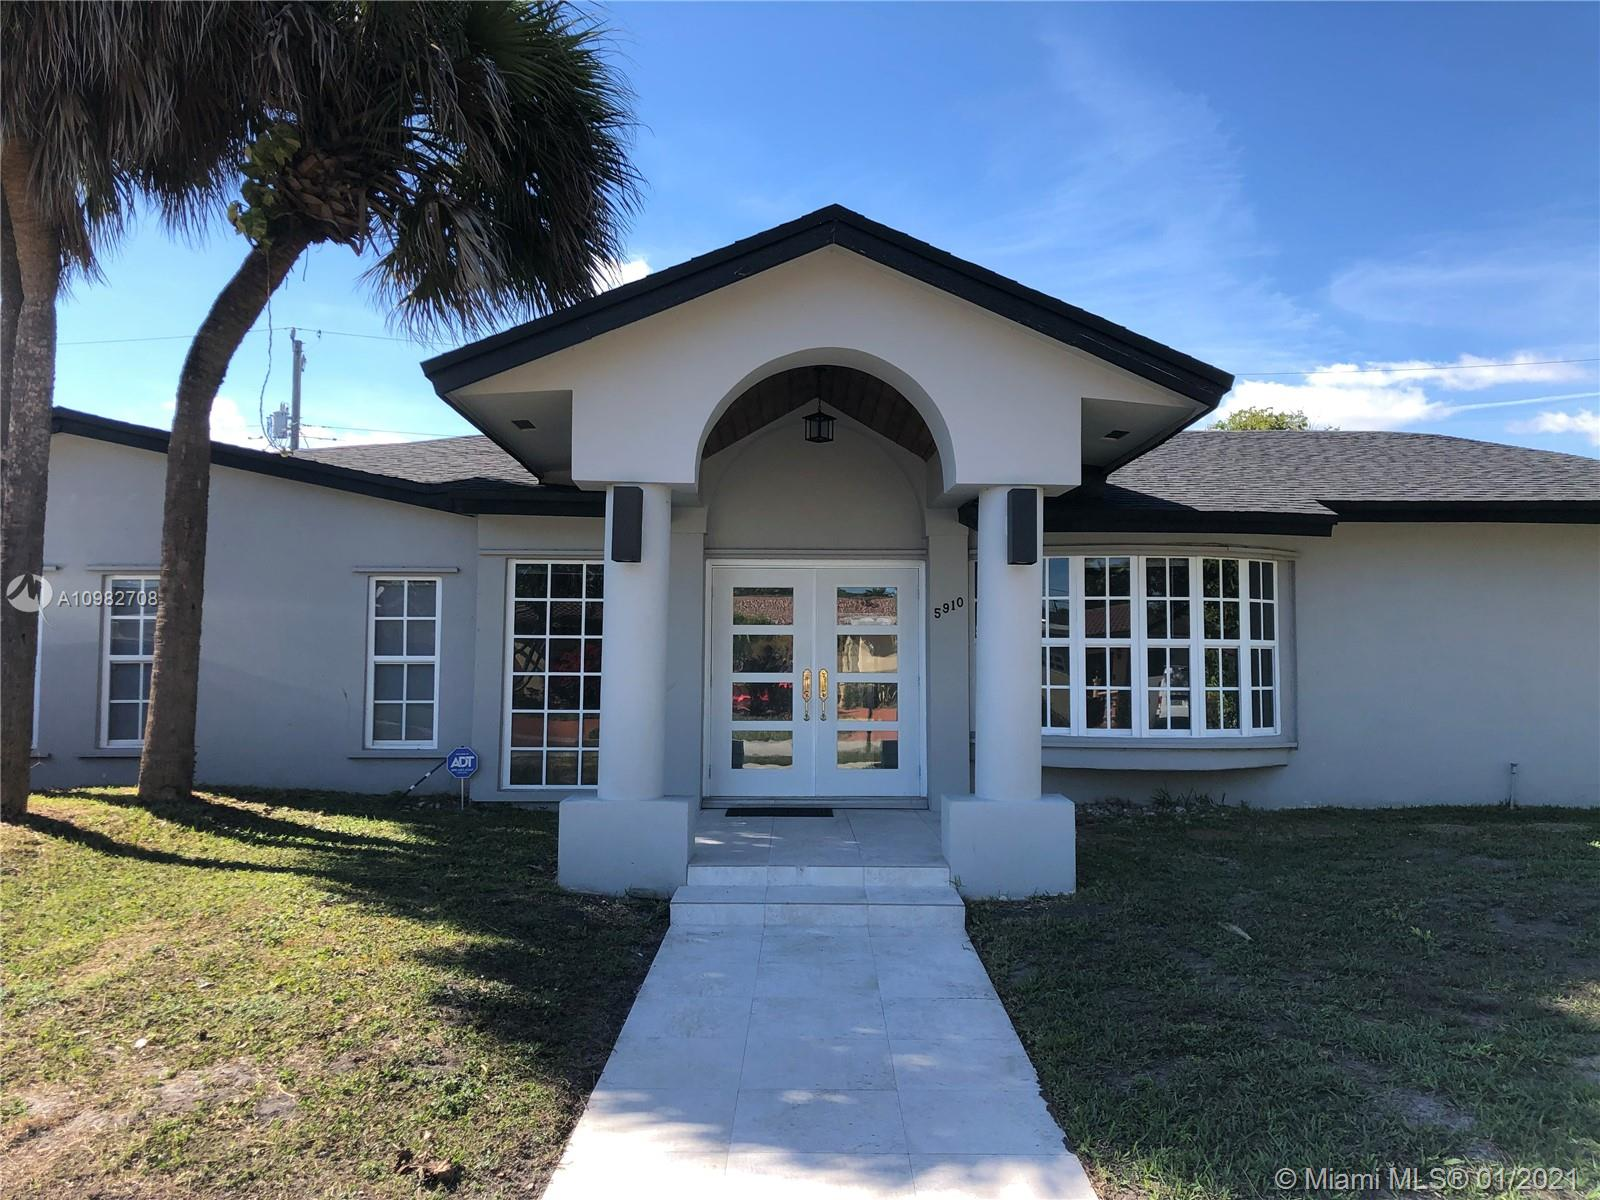 5910 SW 93rd Pl, Miami, Florida 33173, 4 Bedrooms Bedrooms, ,2 BathroomsBathrooms,Residential,For Sale,5910 SW 93rd Pl,A10982708